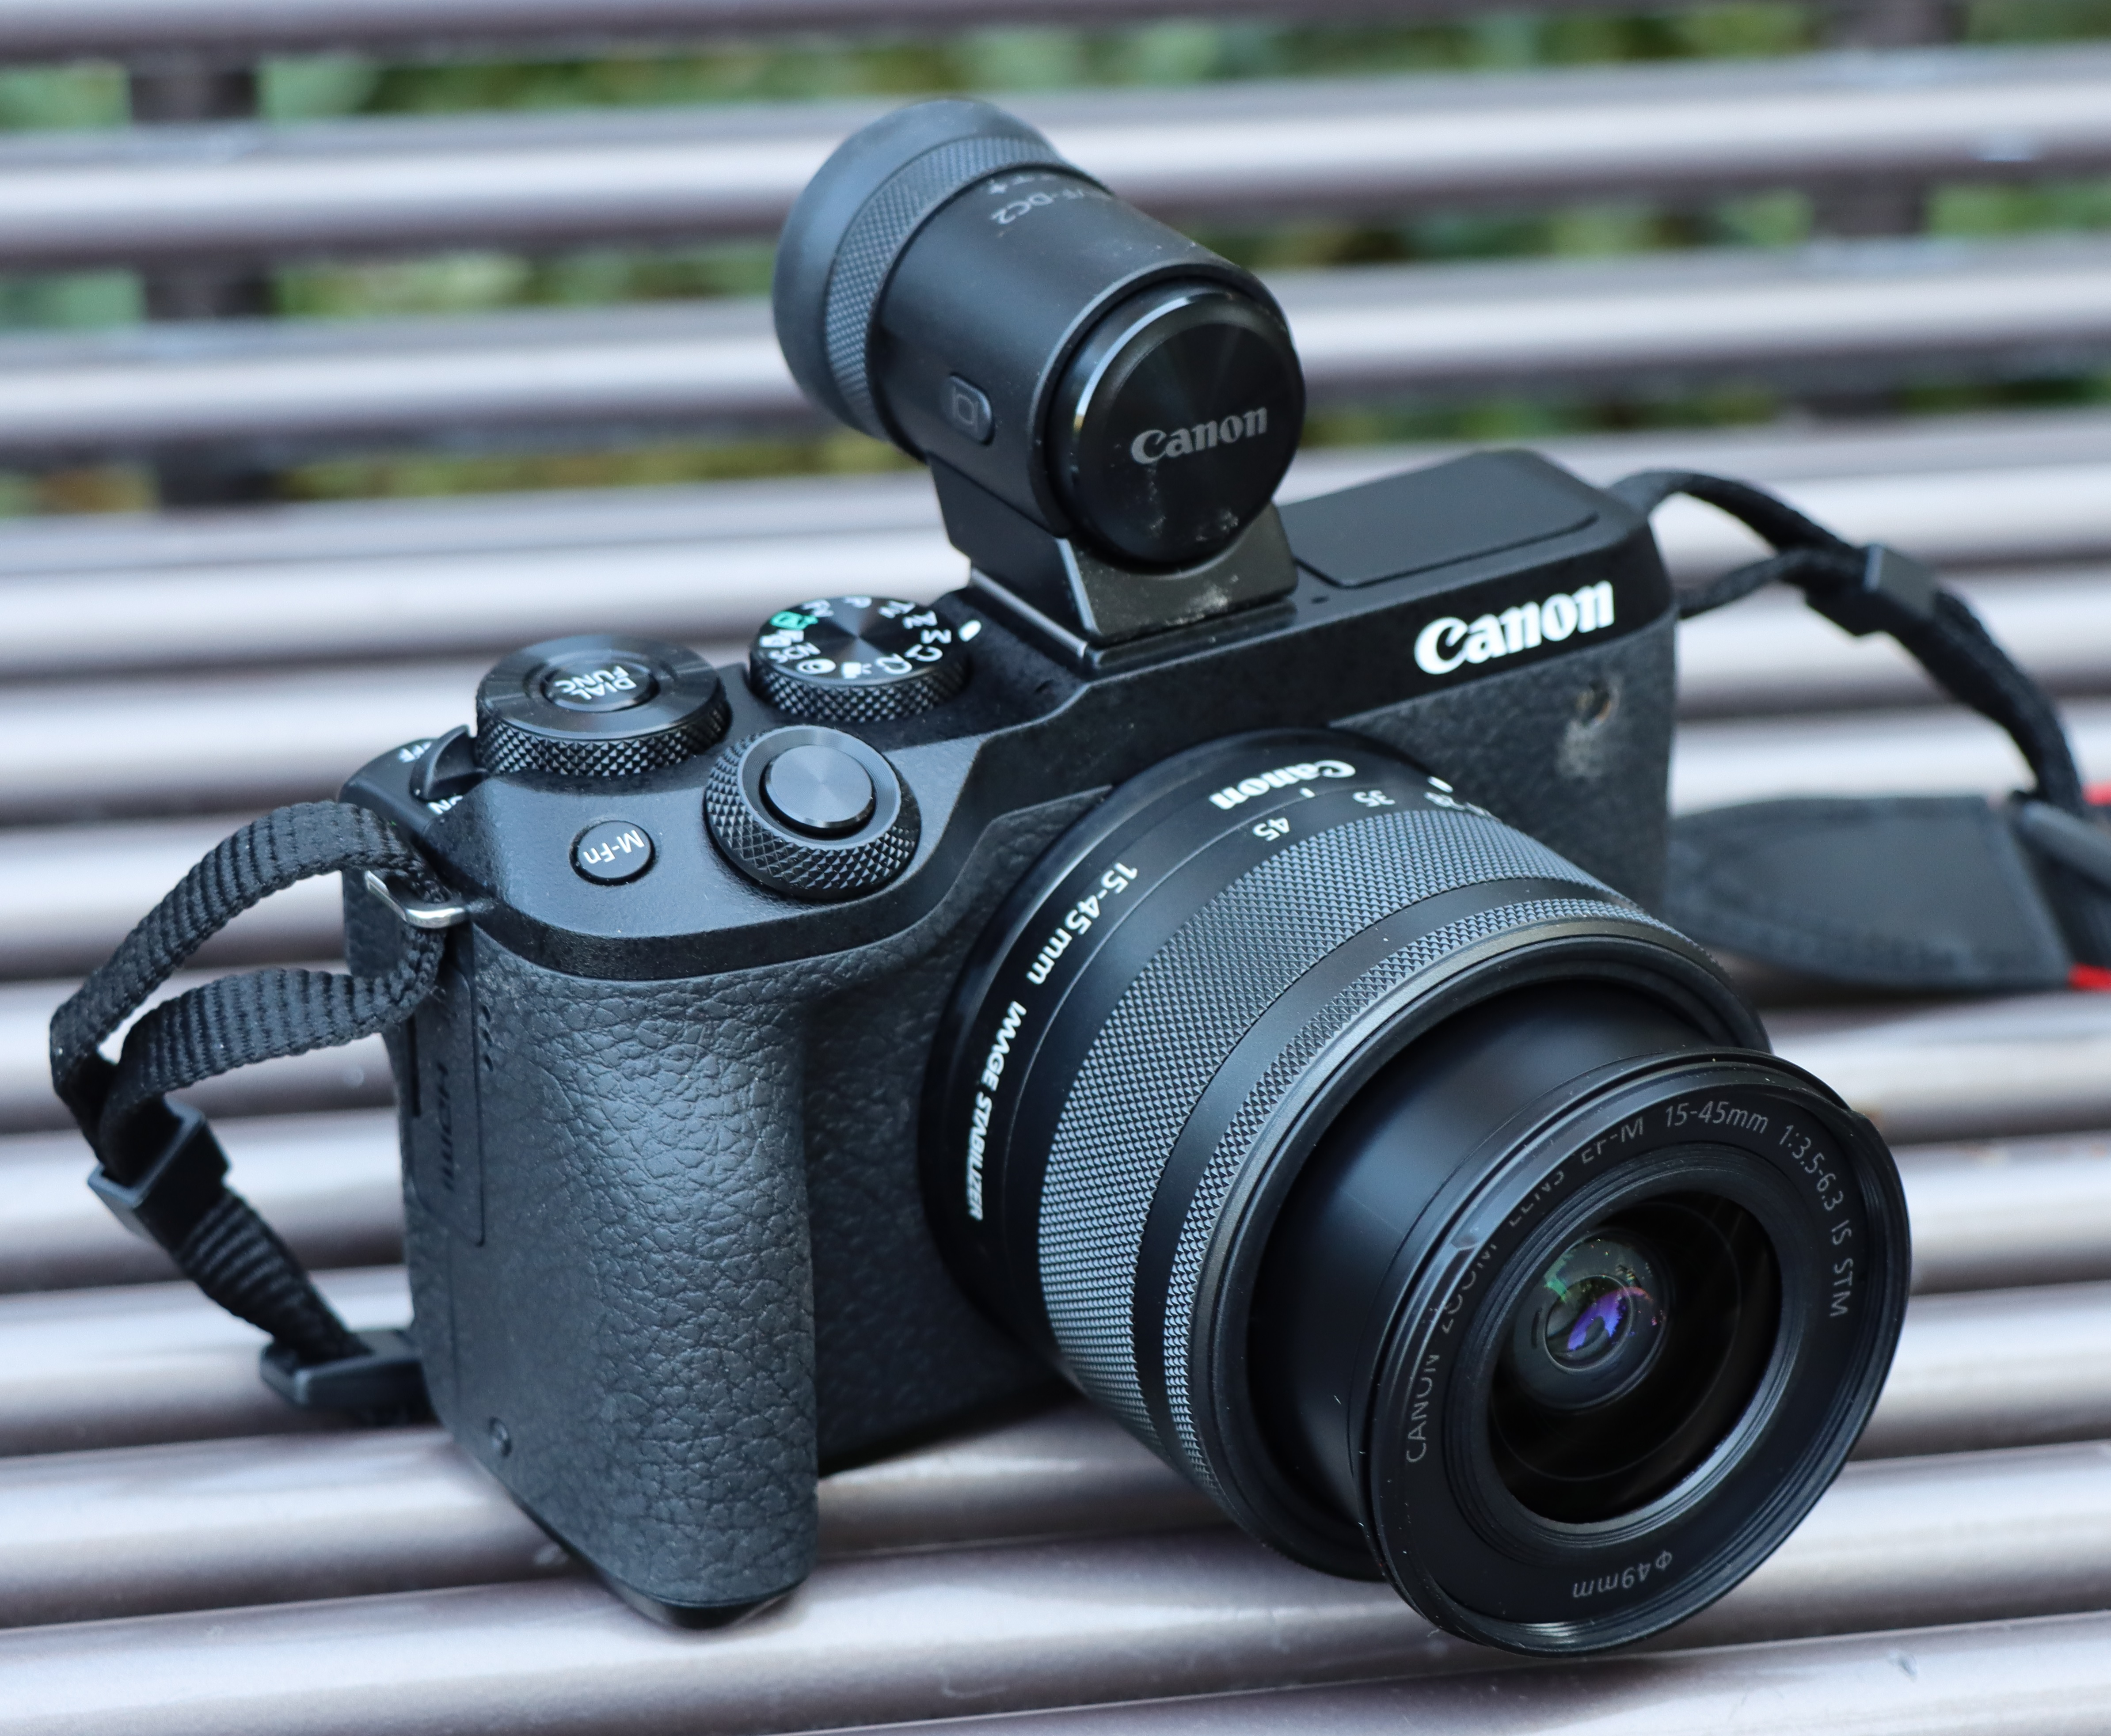 Canon M6 Mark II with viewfinder